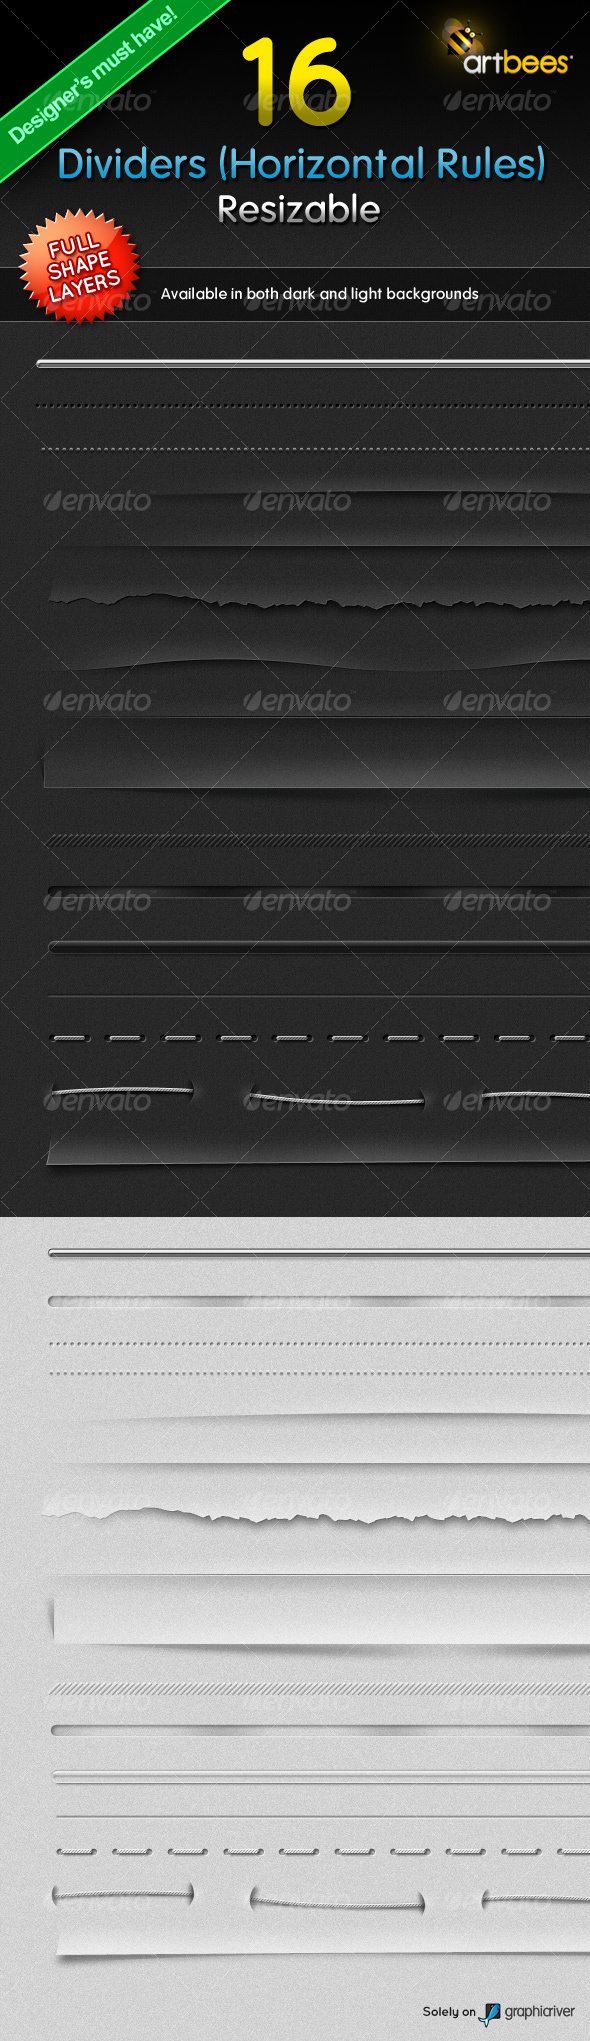 GraphicRiver 16 Dividers Horizontal Rules Resizable 117475